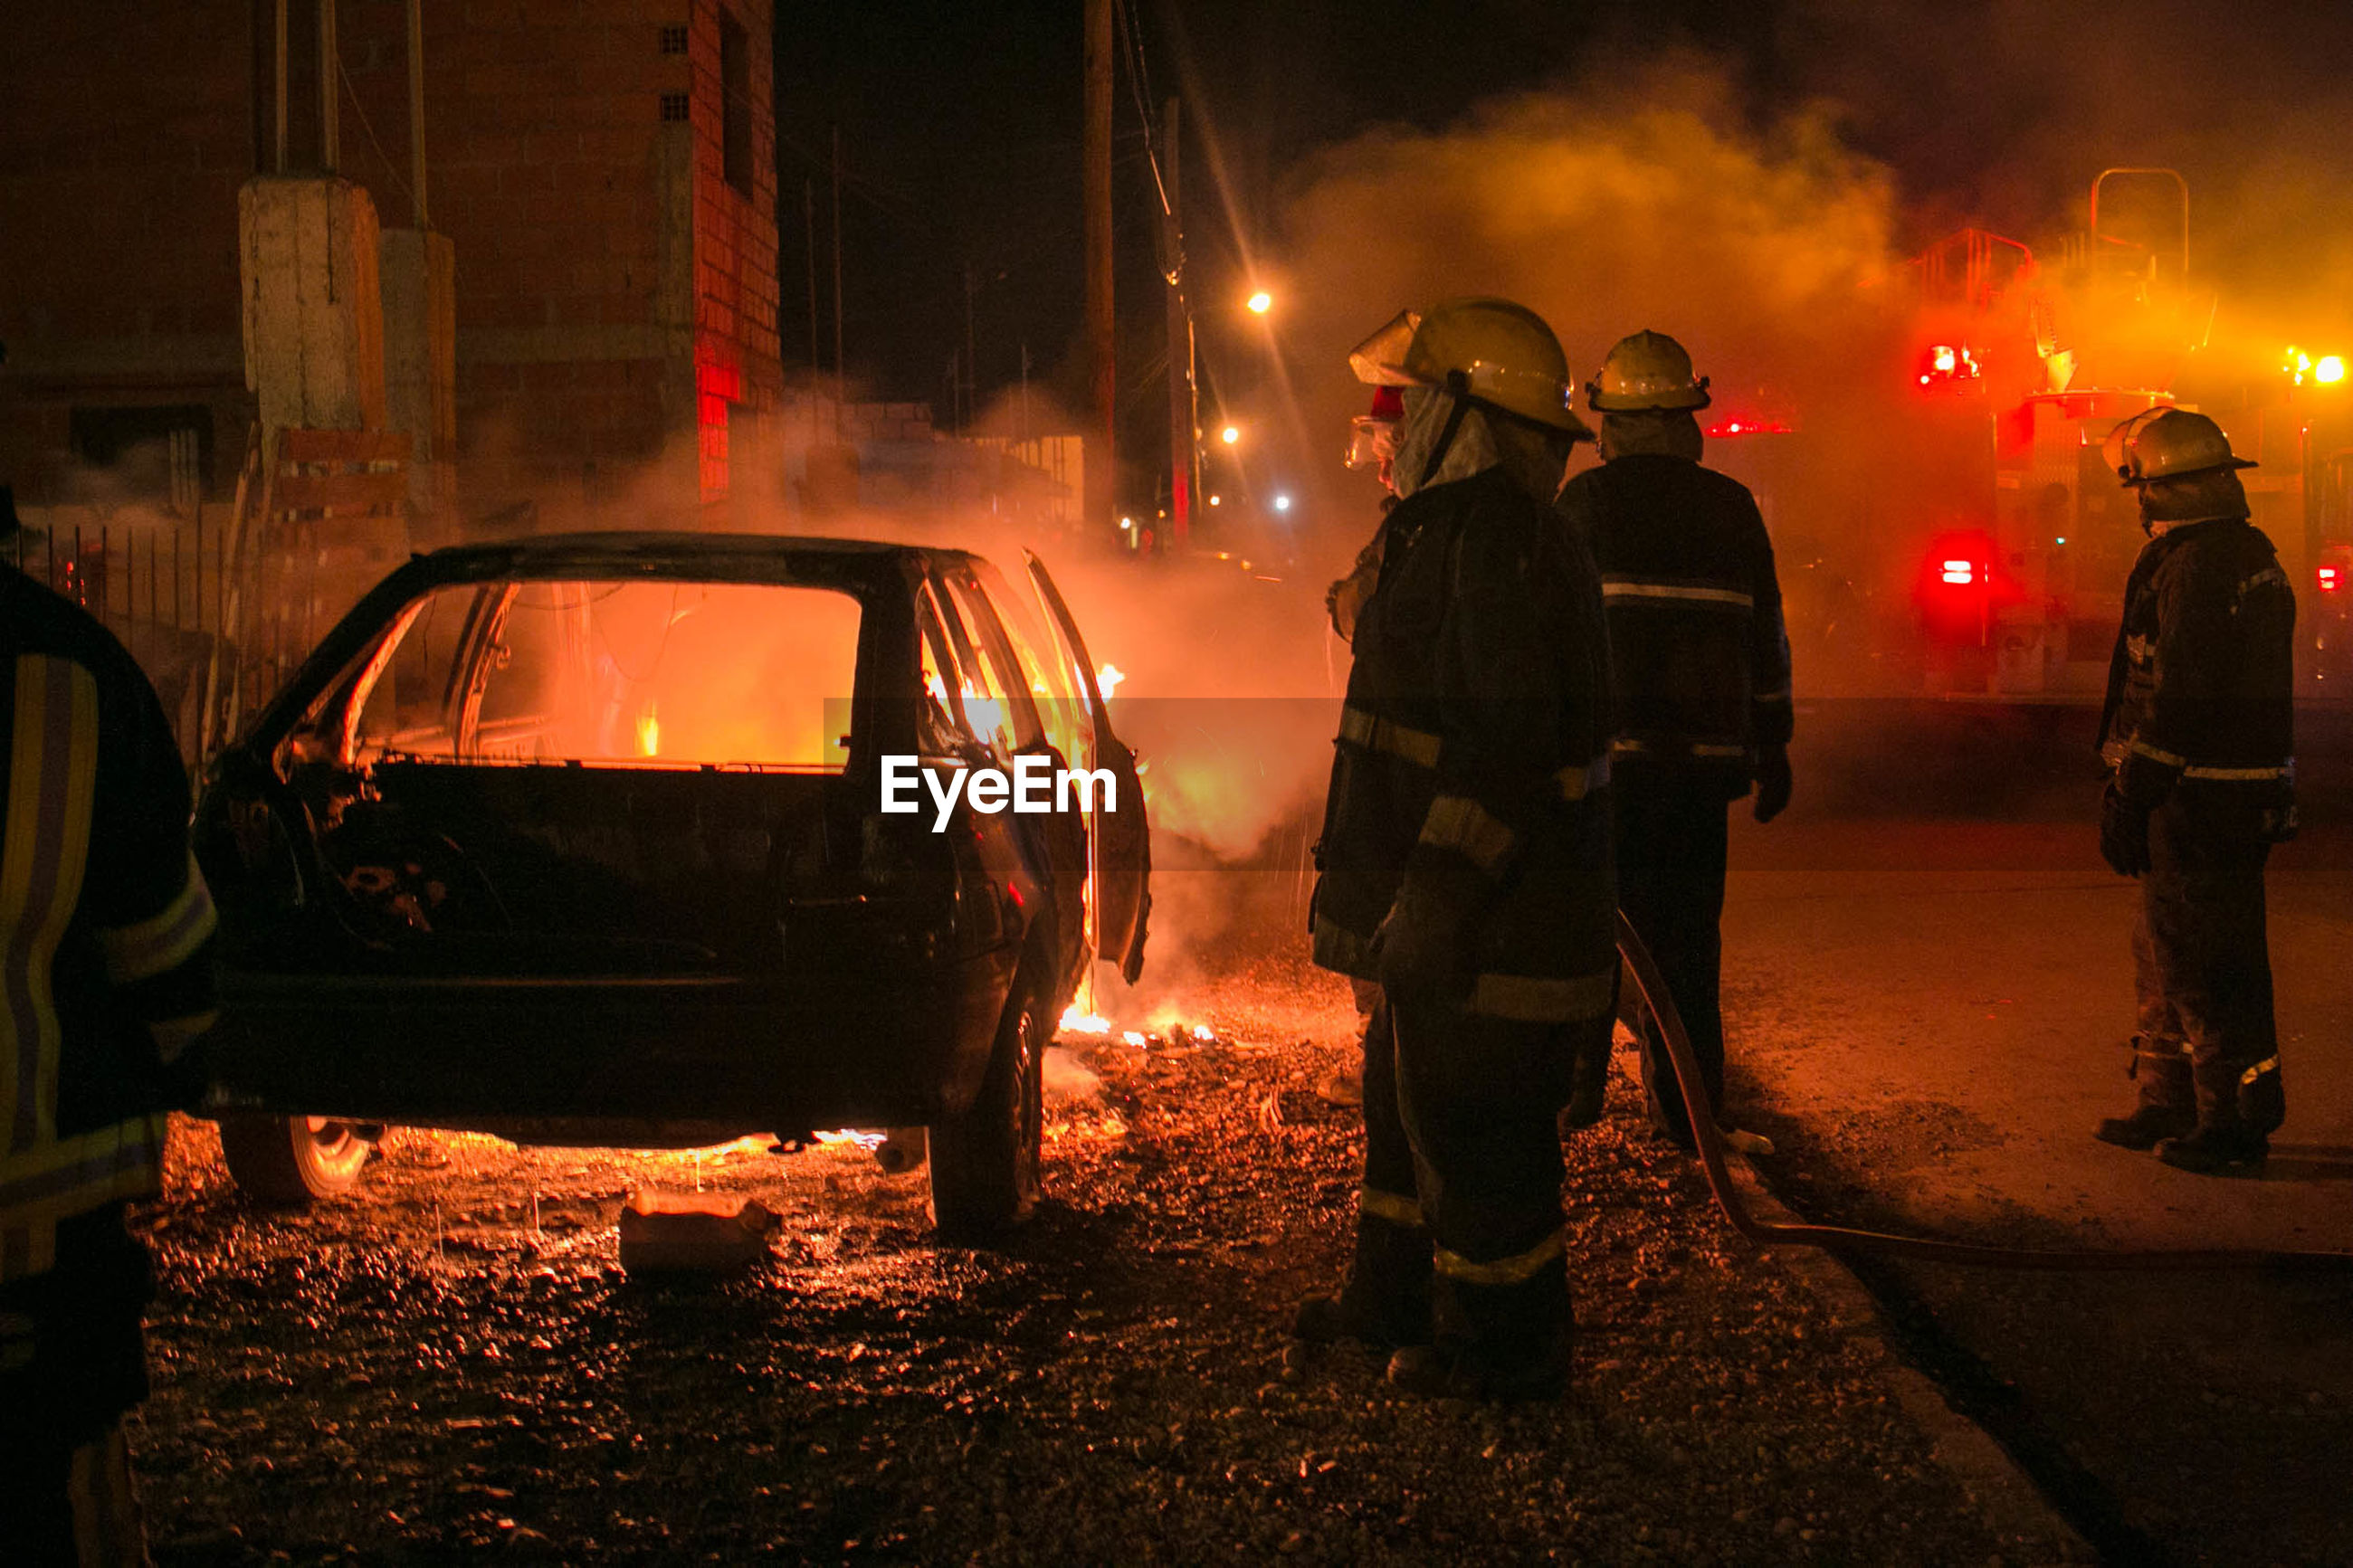 Firefighters standing by burning car at night